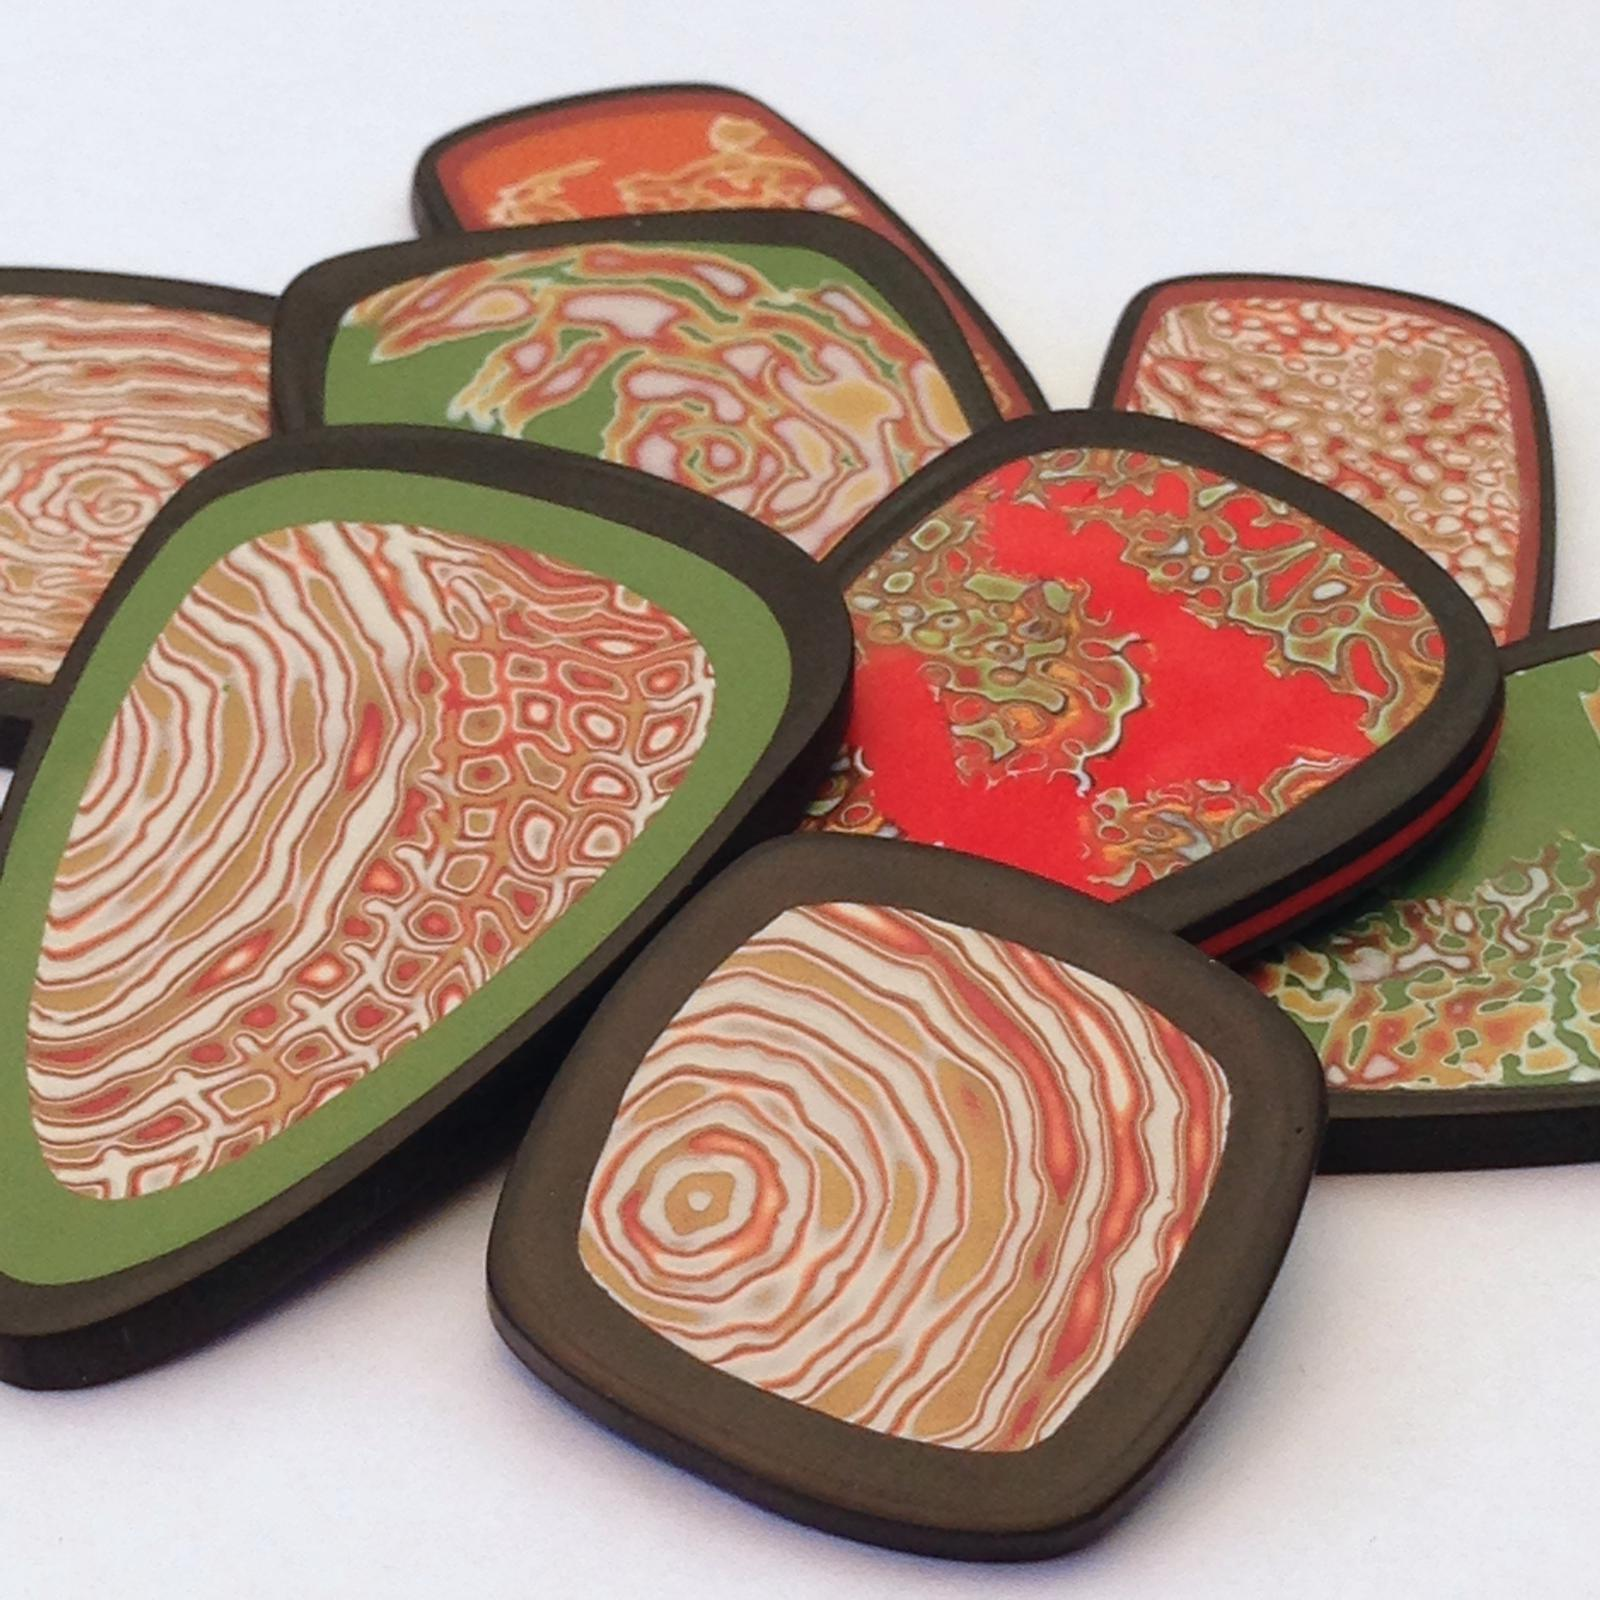 Ripple Range of handmade Polymer clay Jewellery By Jay's Creations